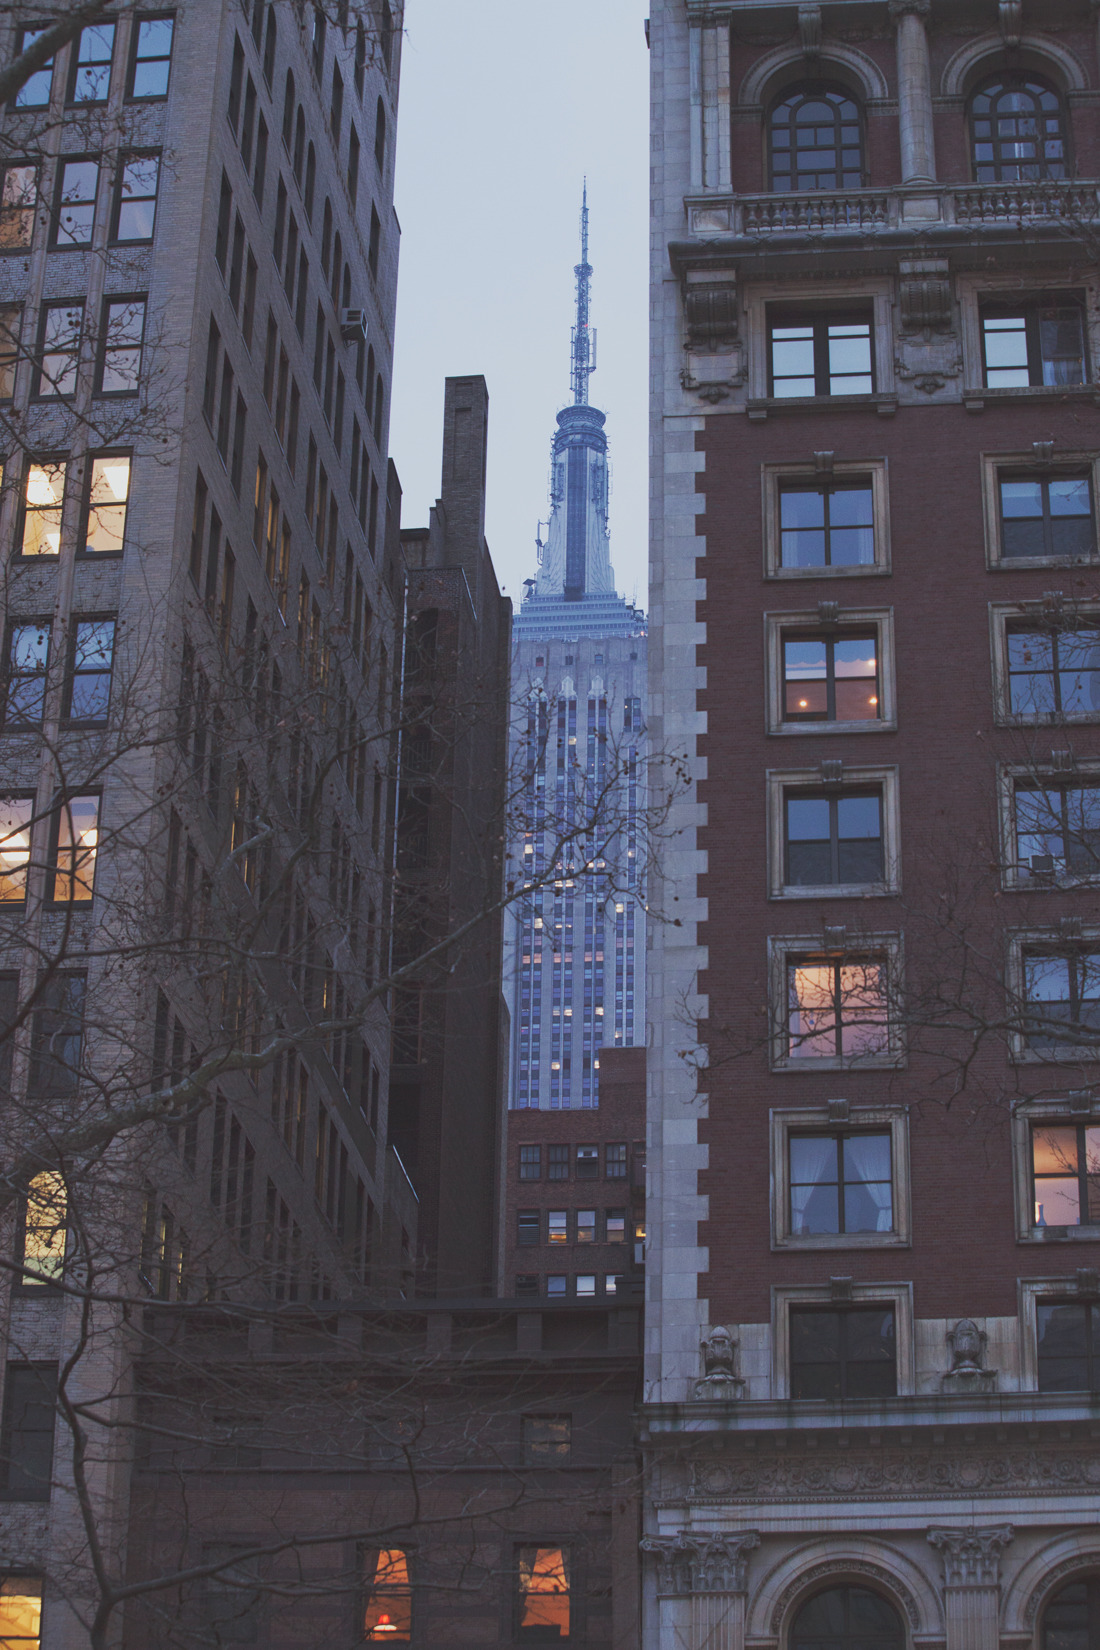 Playing hide and seek with buildings in NYC. (by Moey Hoque)